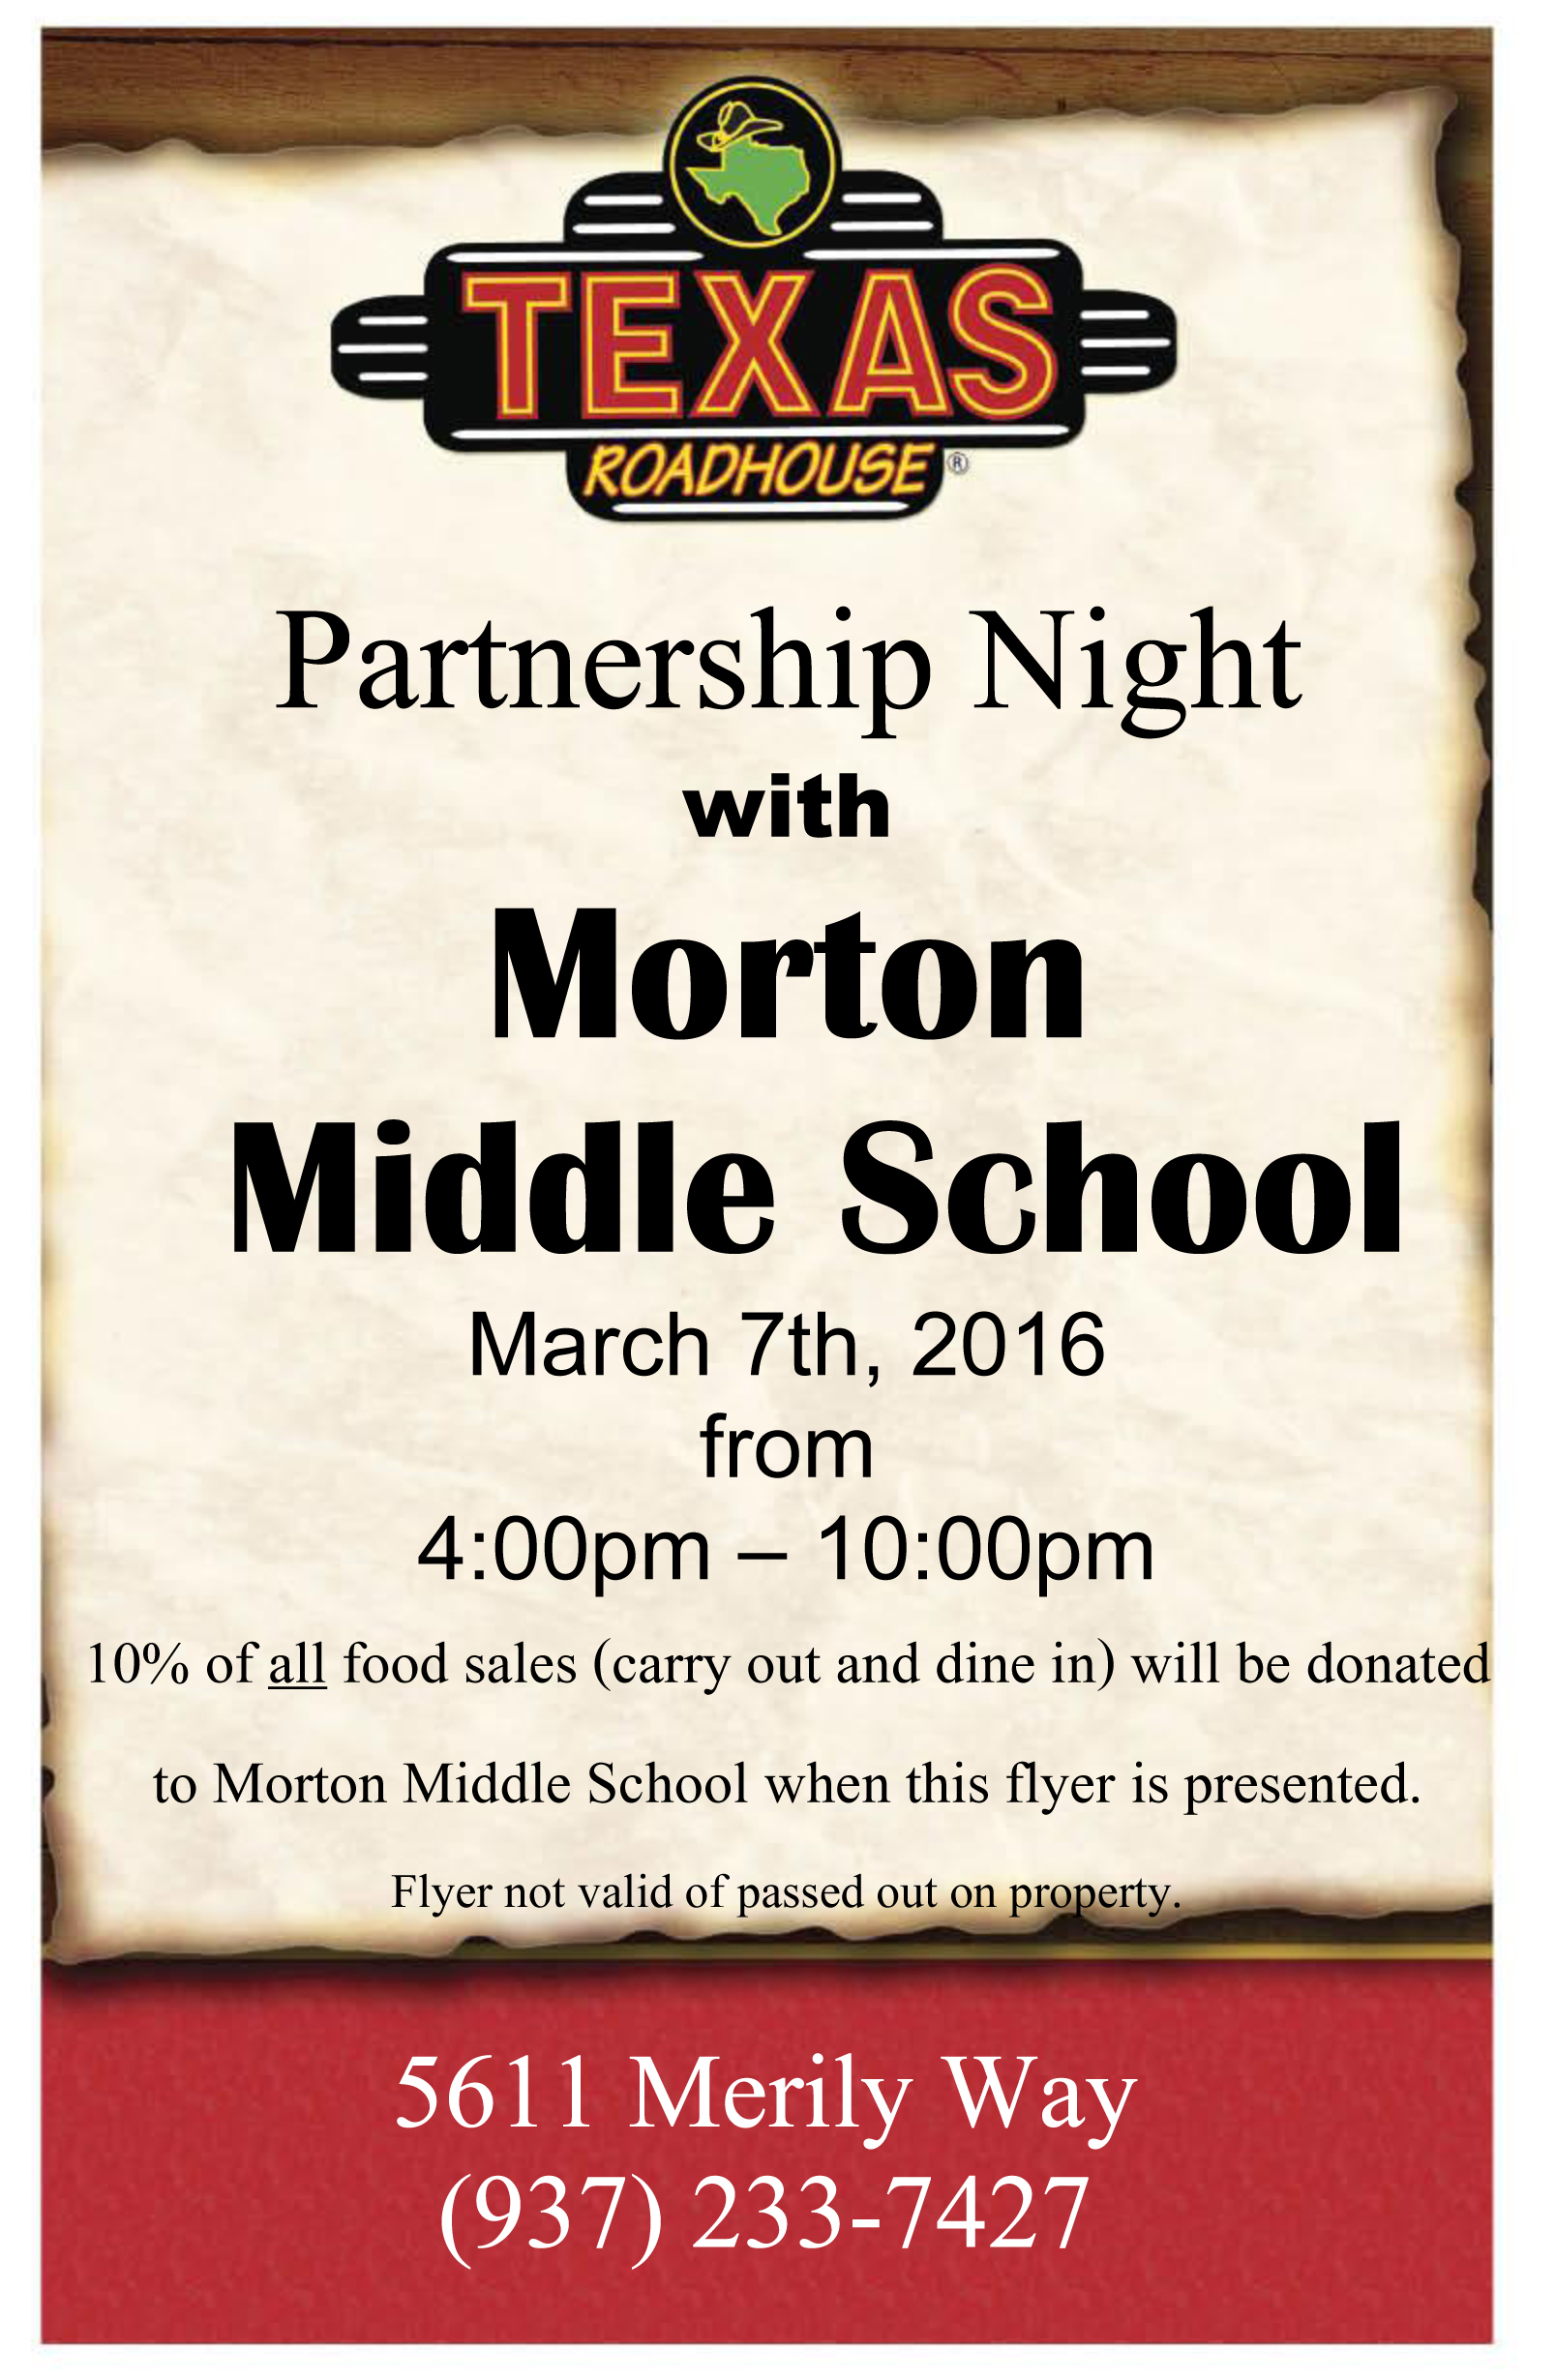 Visit Texas Roadhouse, Support Morton PTO